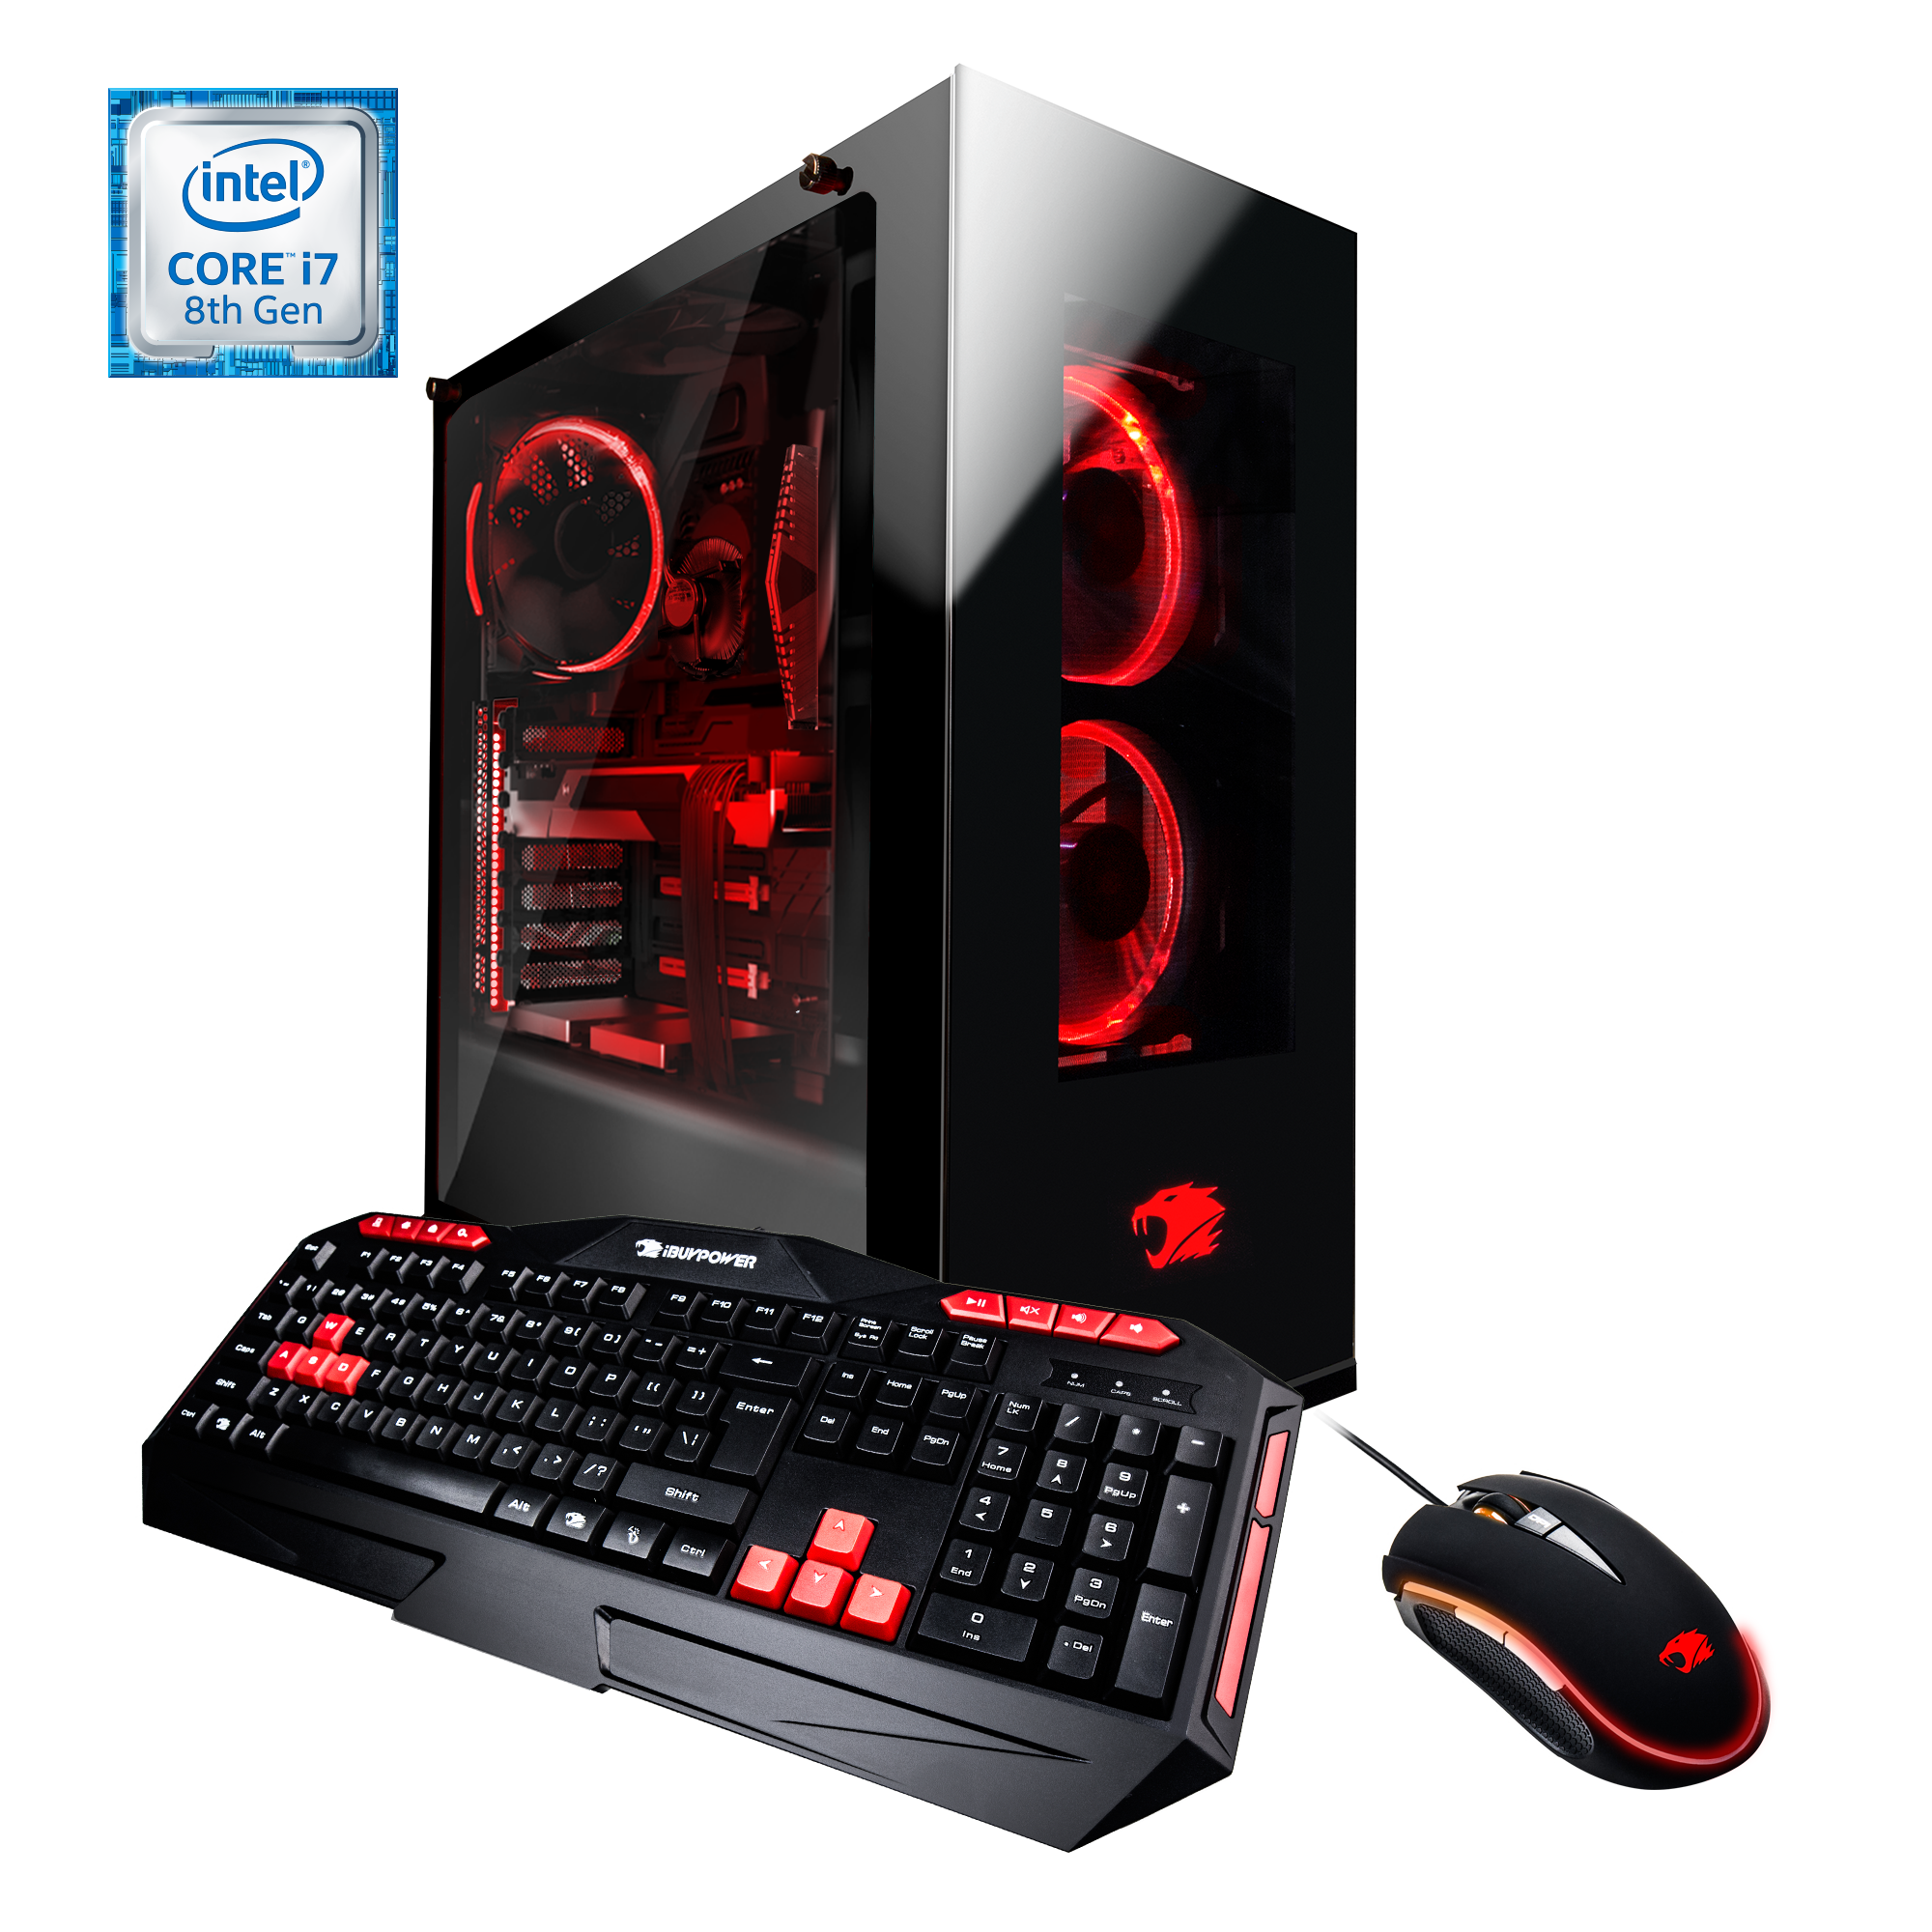 iBUYPOWER WA8420i - Gaming Desktop PC - Intel i7-8700k - 16GB DDR4 Memory - NVIDIA GeForce GTX1070 8GB - 1TB Hard Drive - 240GB SSD - Wi-Fi - Window 10 Home 64bit(Monitor Not Included) - WA8420i